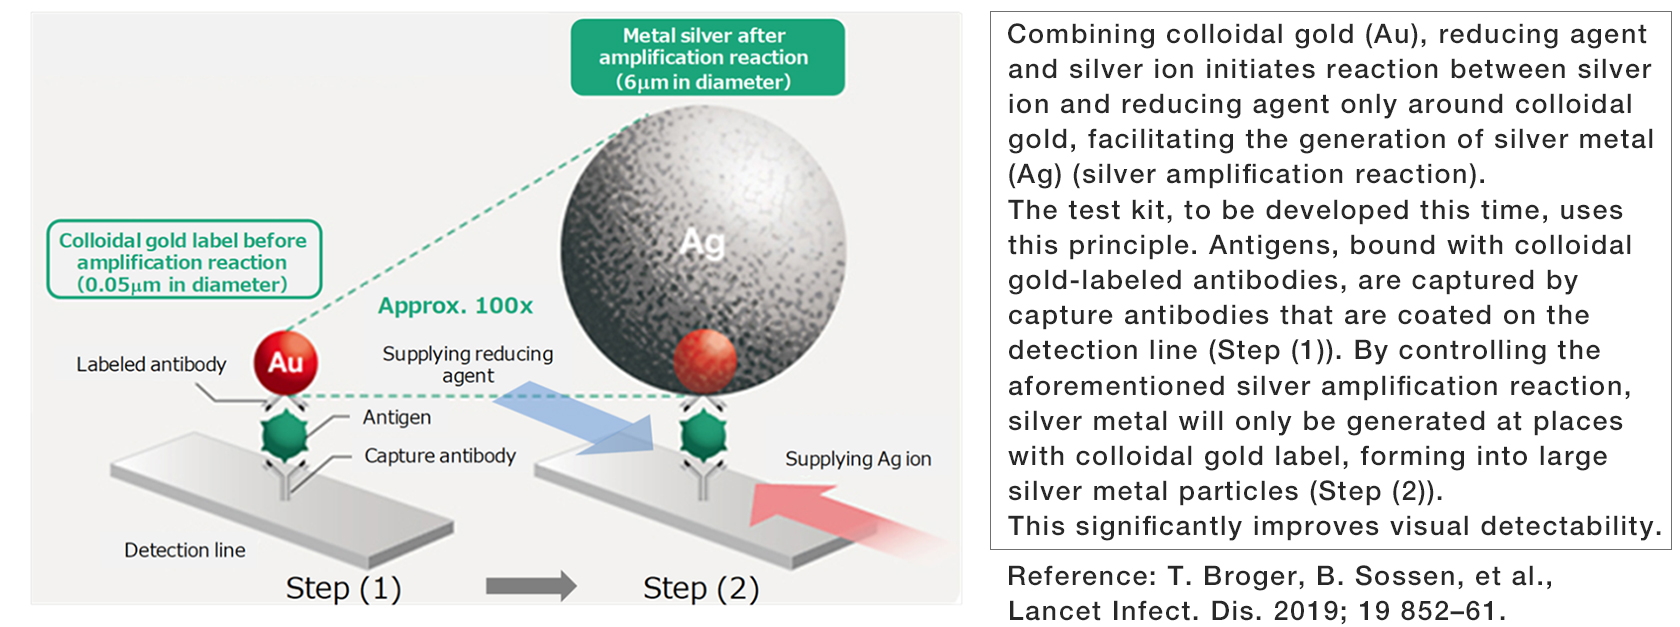 [Image]Silver amplification technology for use in the antigen test kit to be developed